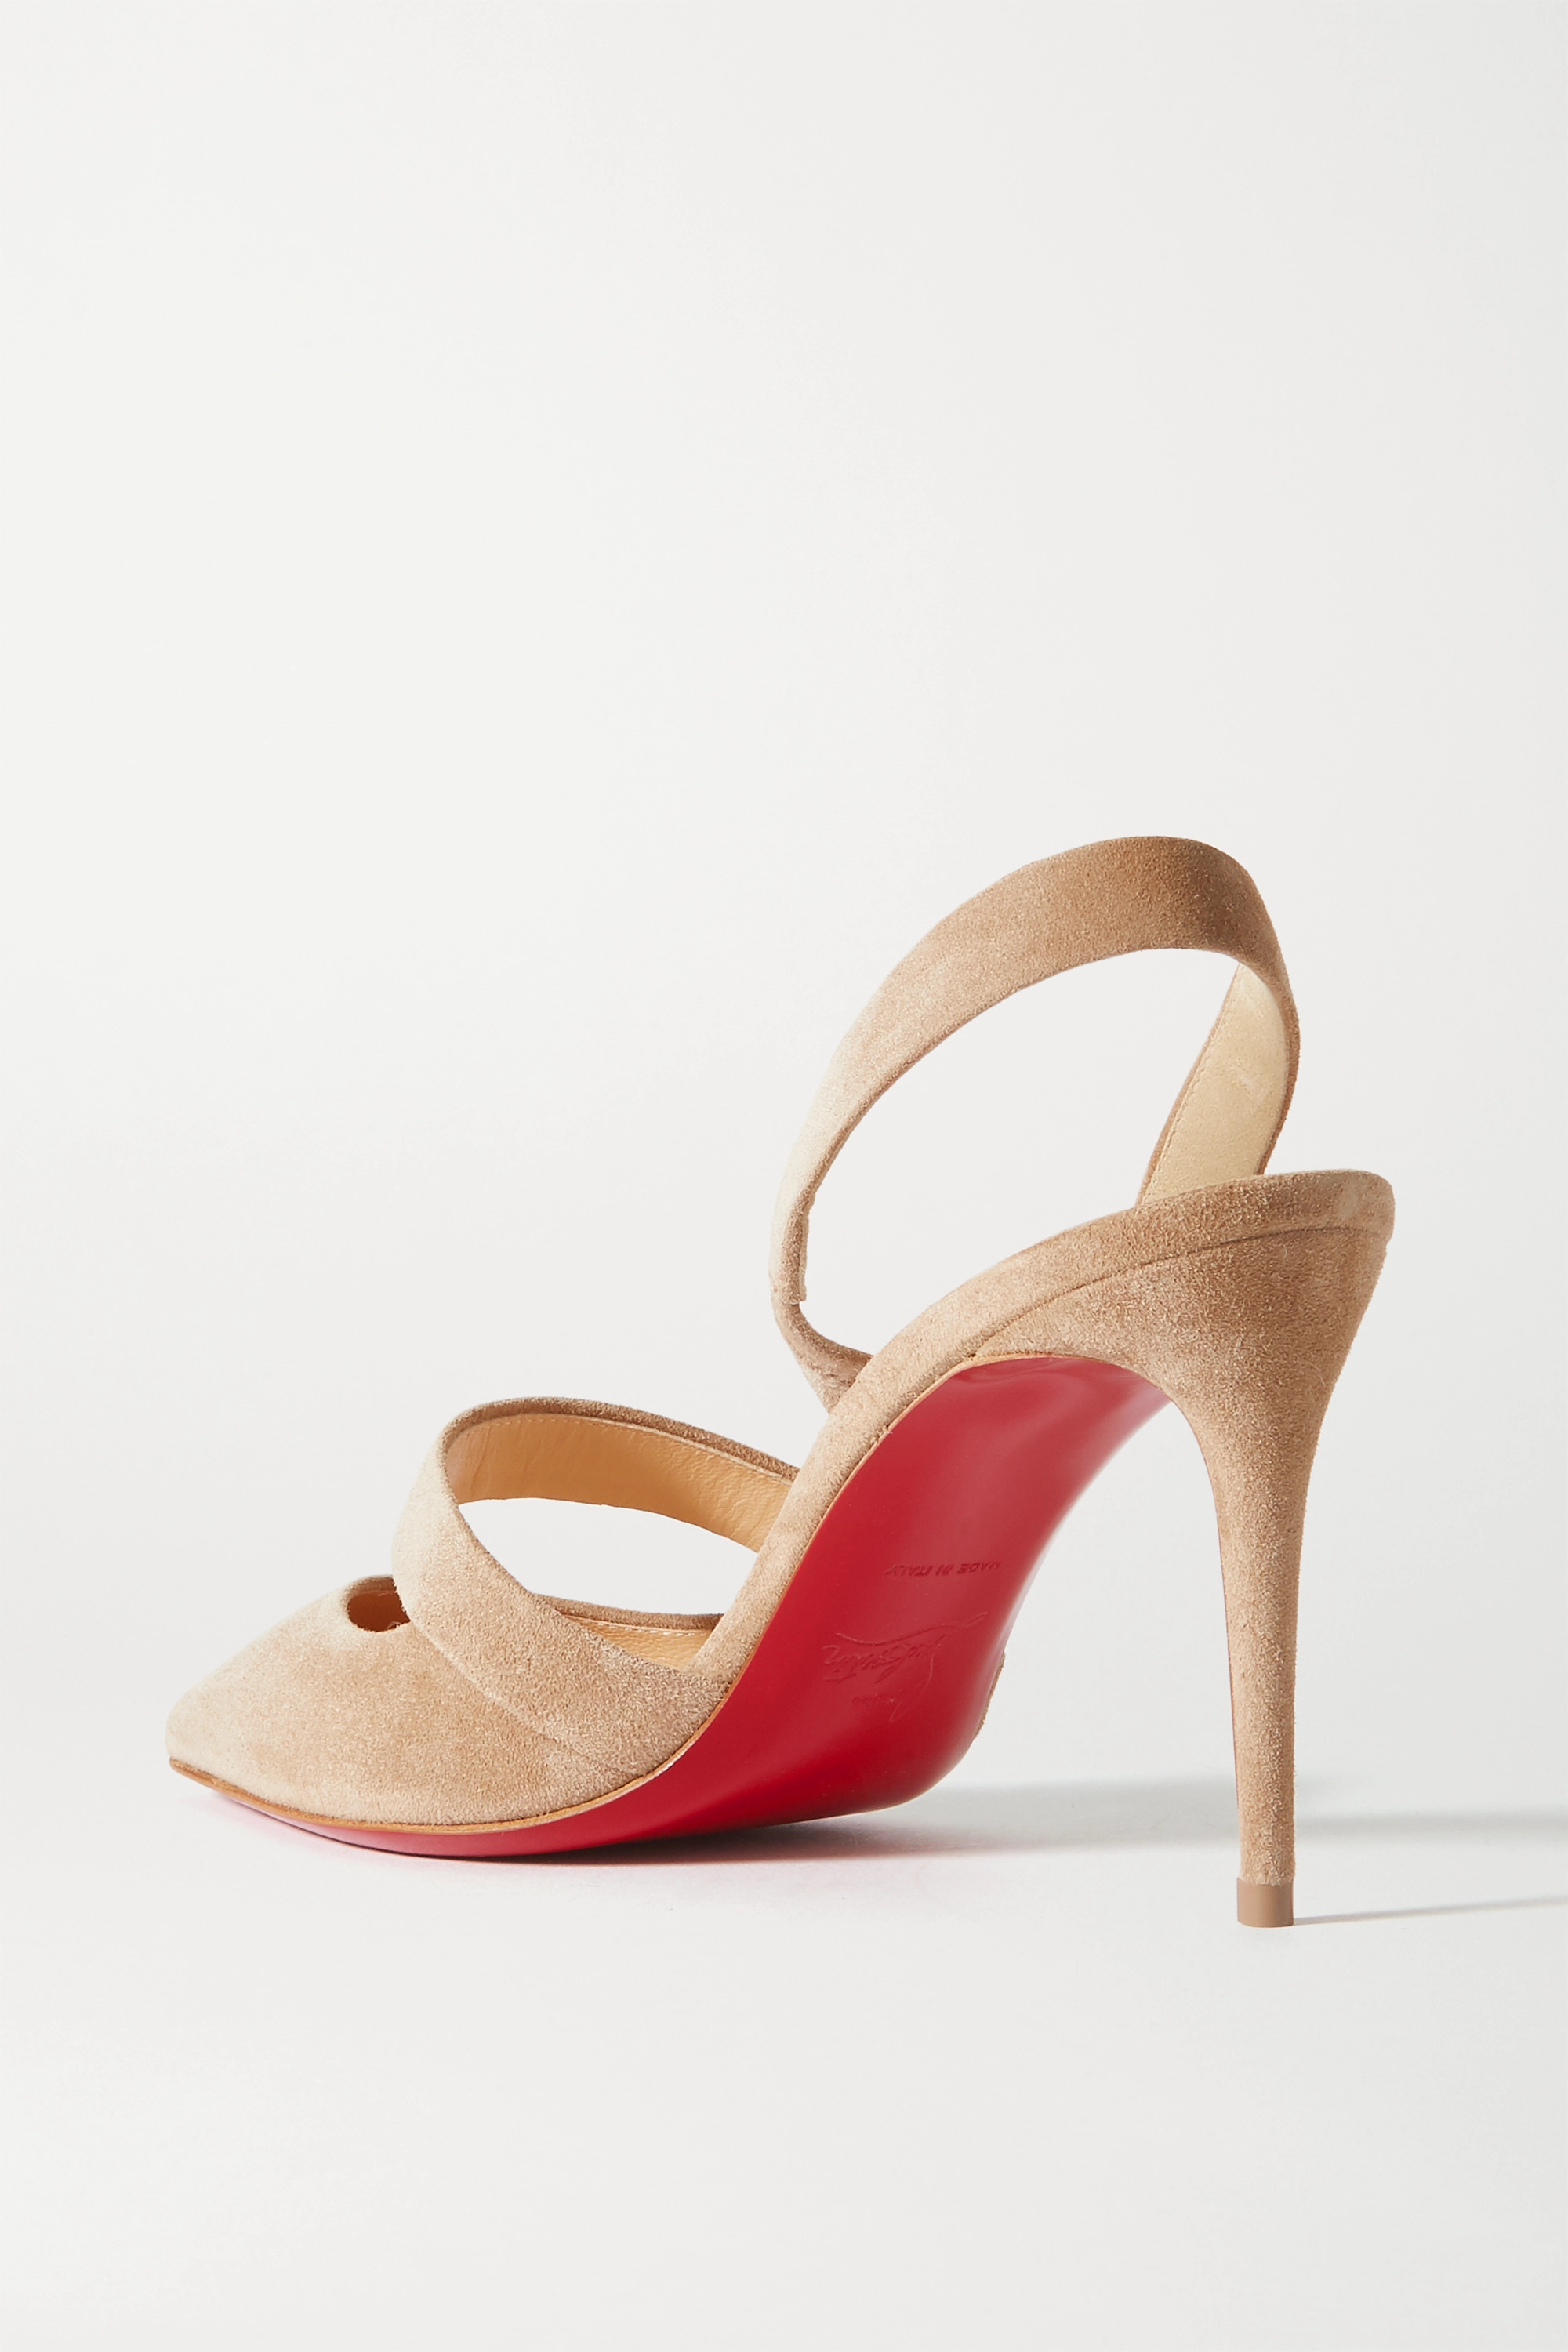 Neutral Actina 85 Suede Slingback Pumps | Christian Louboutin